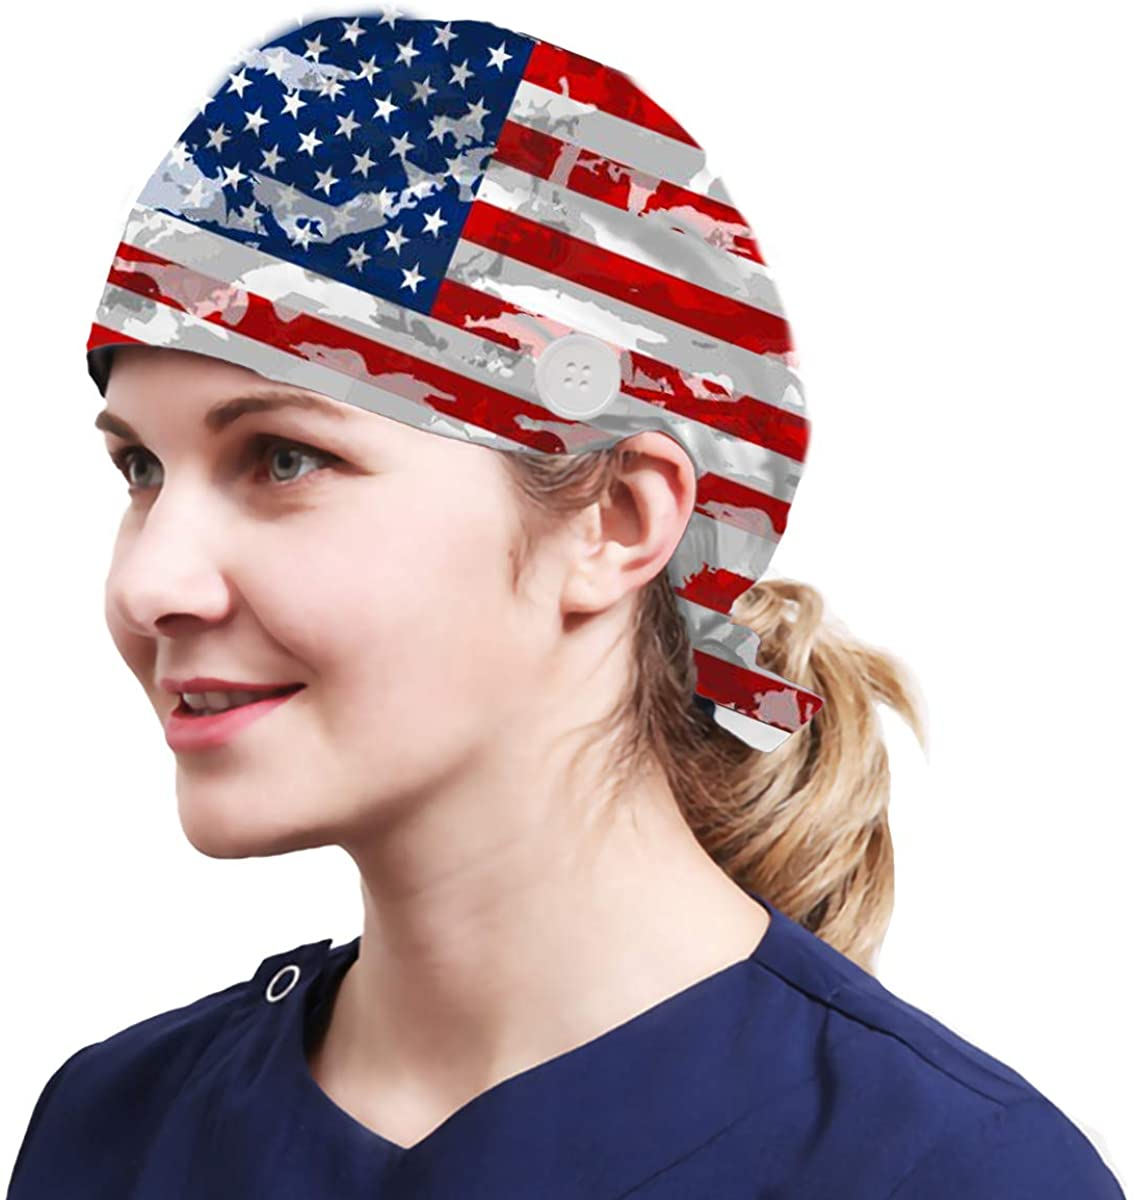 Alex Vando One Size Working Cap with Sweatband Adjustable Tie Back Hats Printed for Women